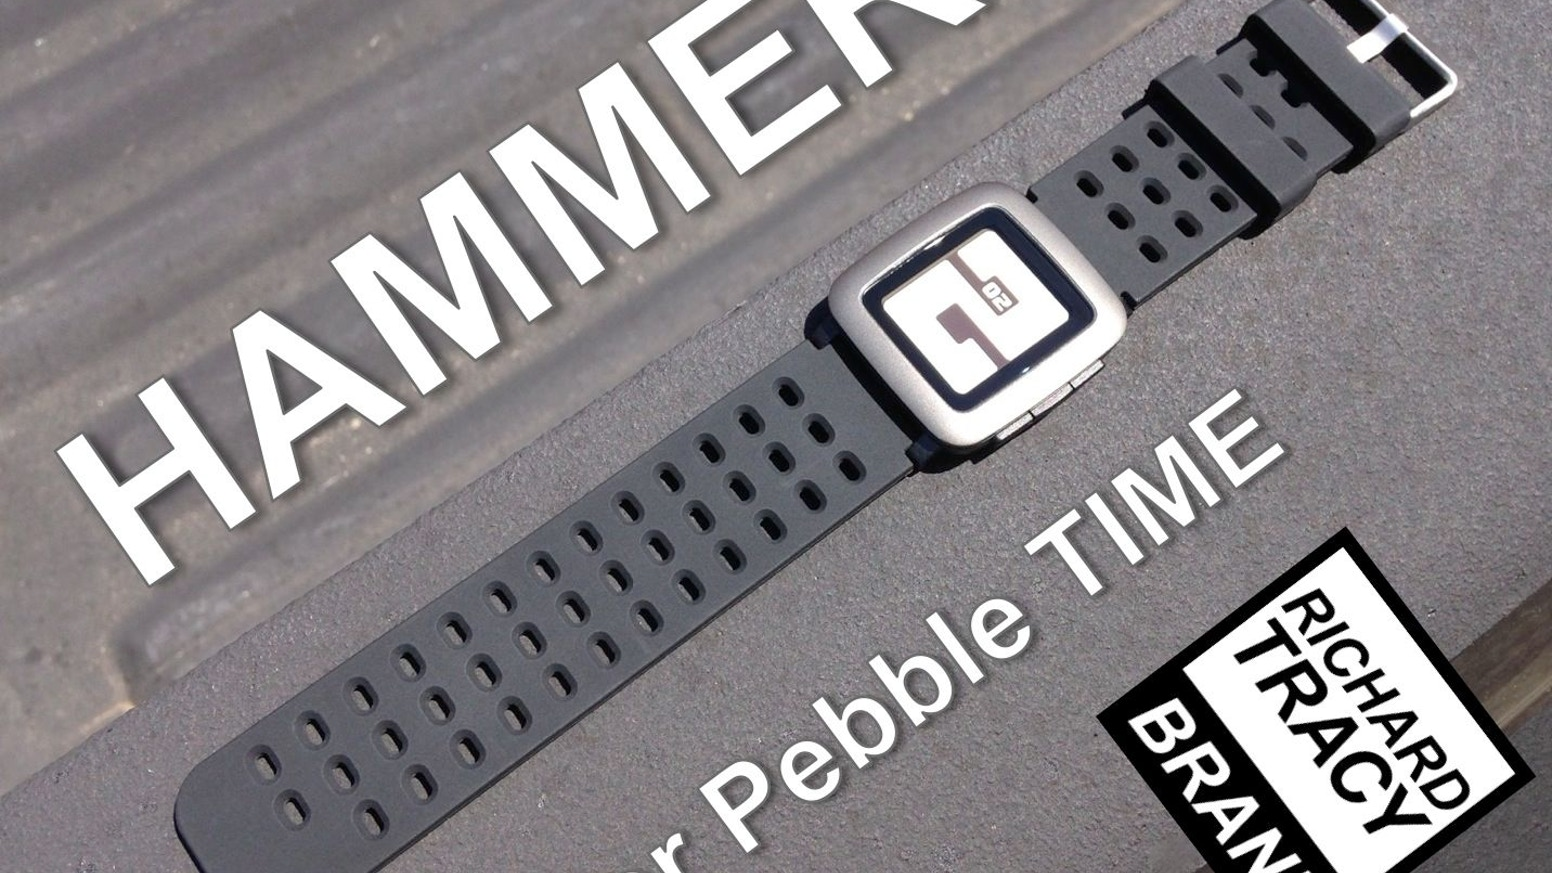 HAMMER is the finest silicone strap for the Pebble Time and Pebble Time Steel. HAMMER straps are wider, ventilated, and waterproof.